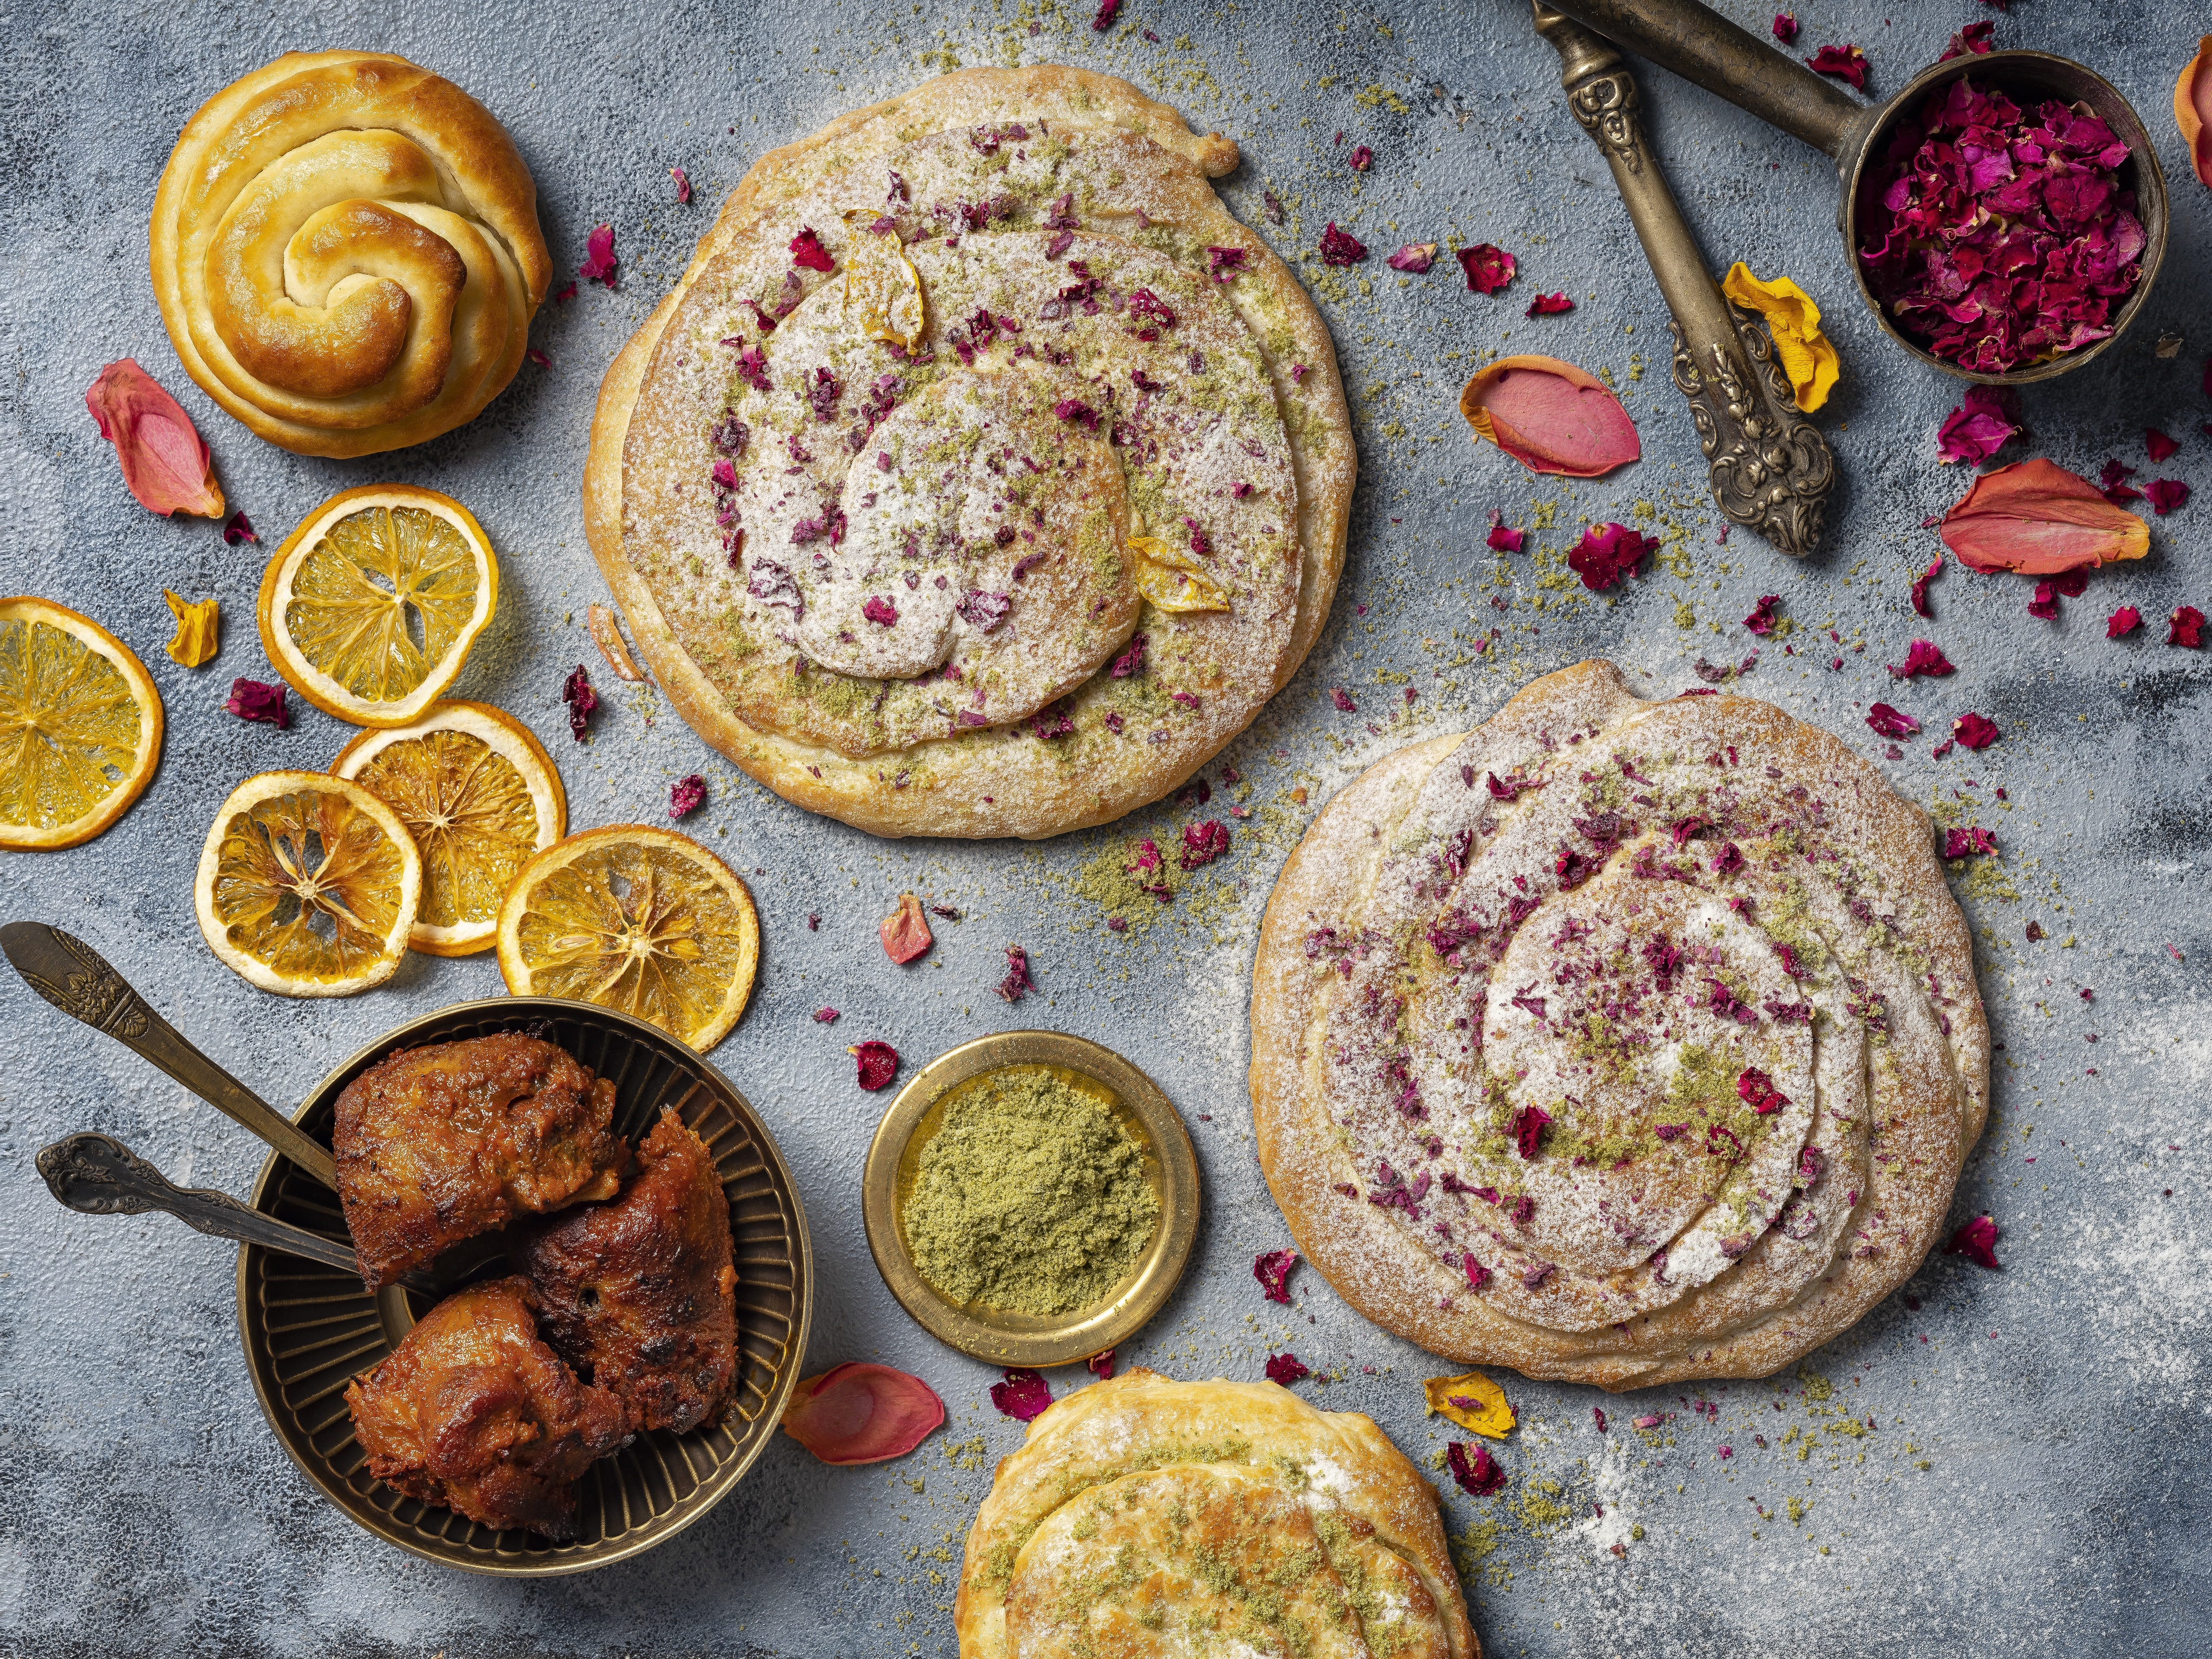 Lamb and pink rose bread with apple cider jam at Gupshup